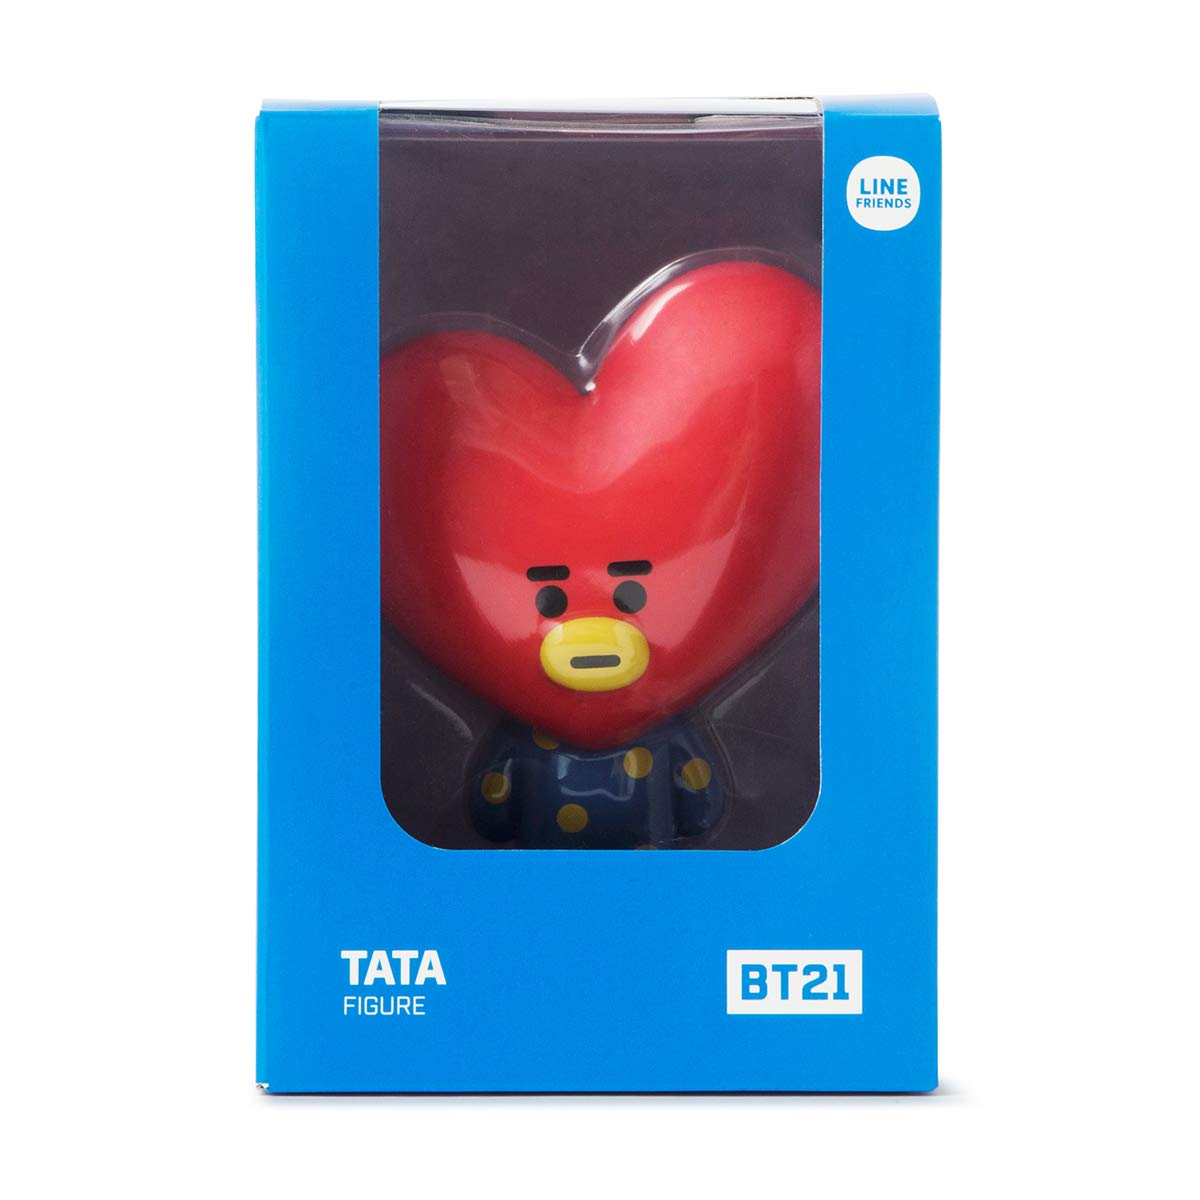 BT21 Official Merchandise by Line Friends Light Blue KOYA Character Action Figure Toy Collectible Doll 3 Inch